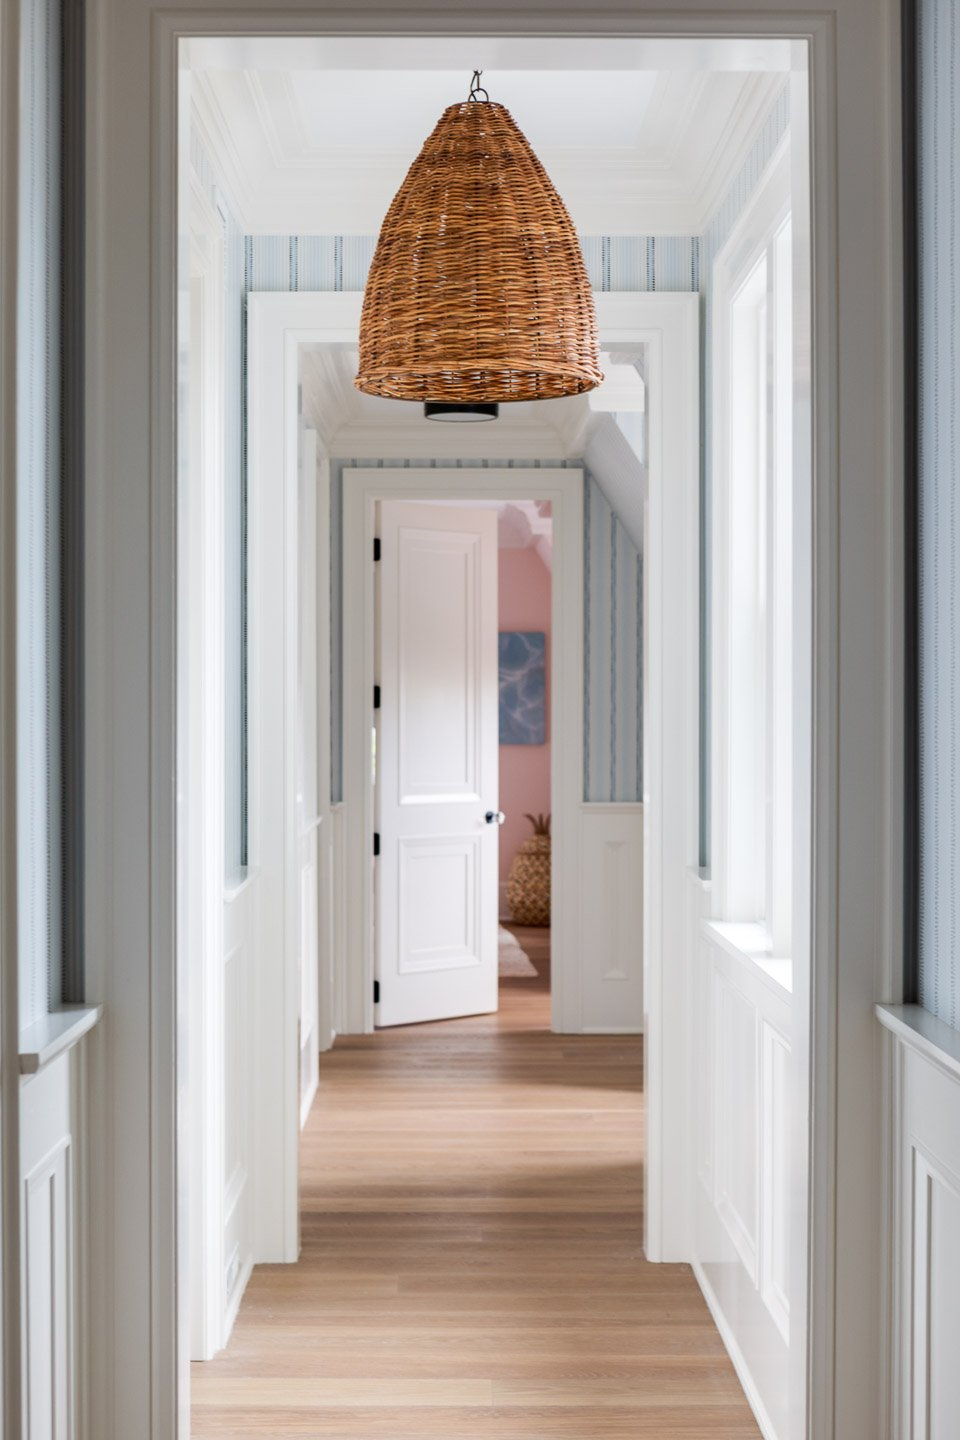 Blakely Interior Design | The Jersey Palm Project | 2nd Floor Hall